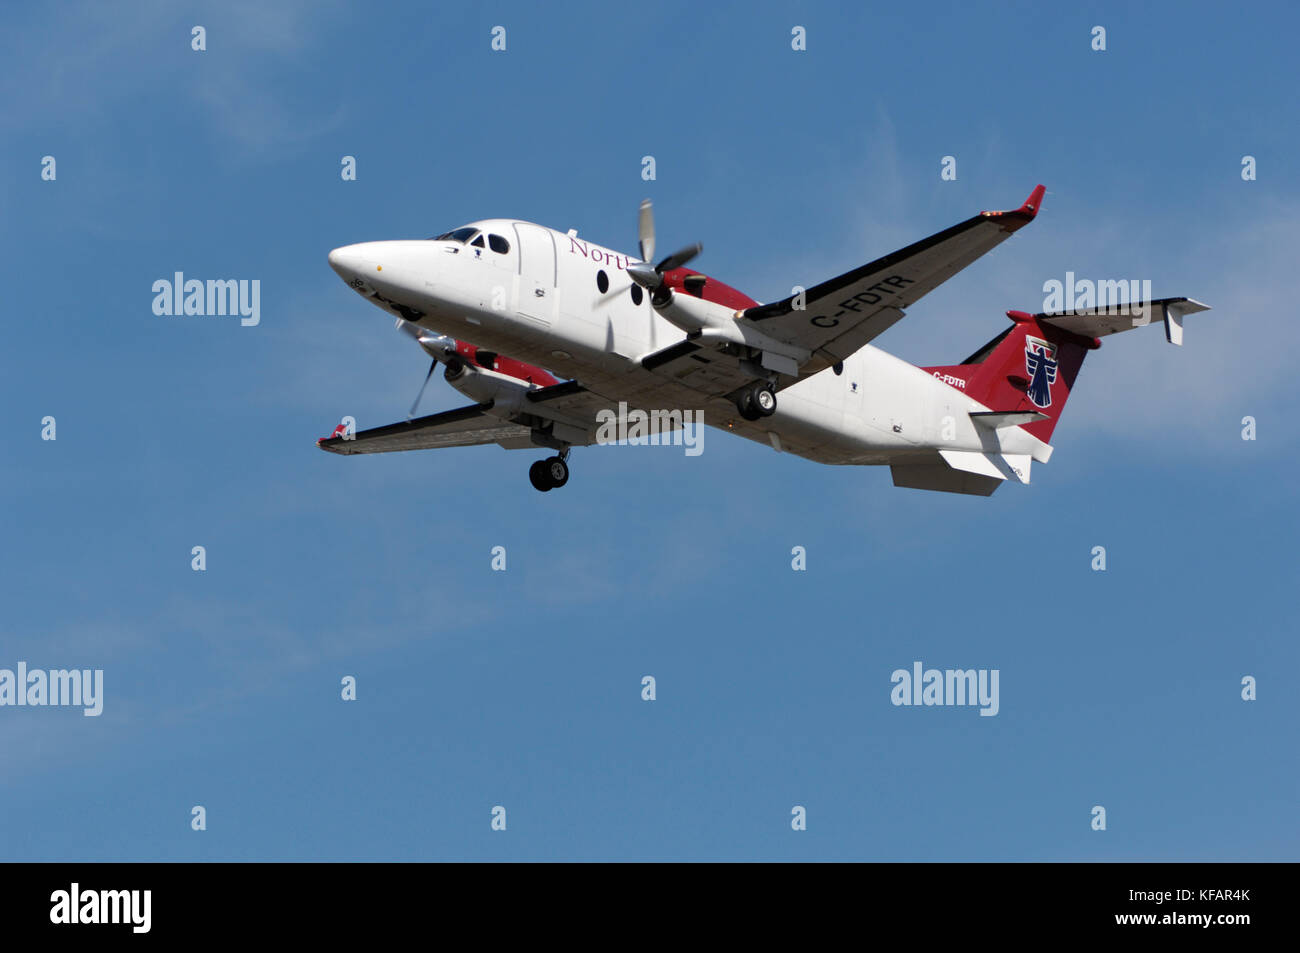 a Northern Thunderbird Air Beechcraft 1900D climbing after take-off with undercarriage retracting - Stock Image